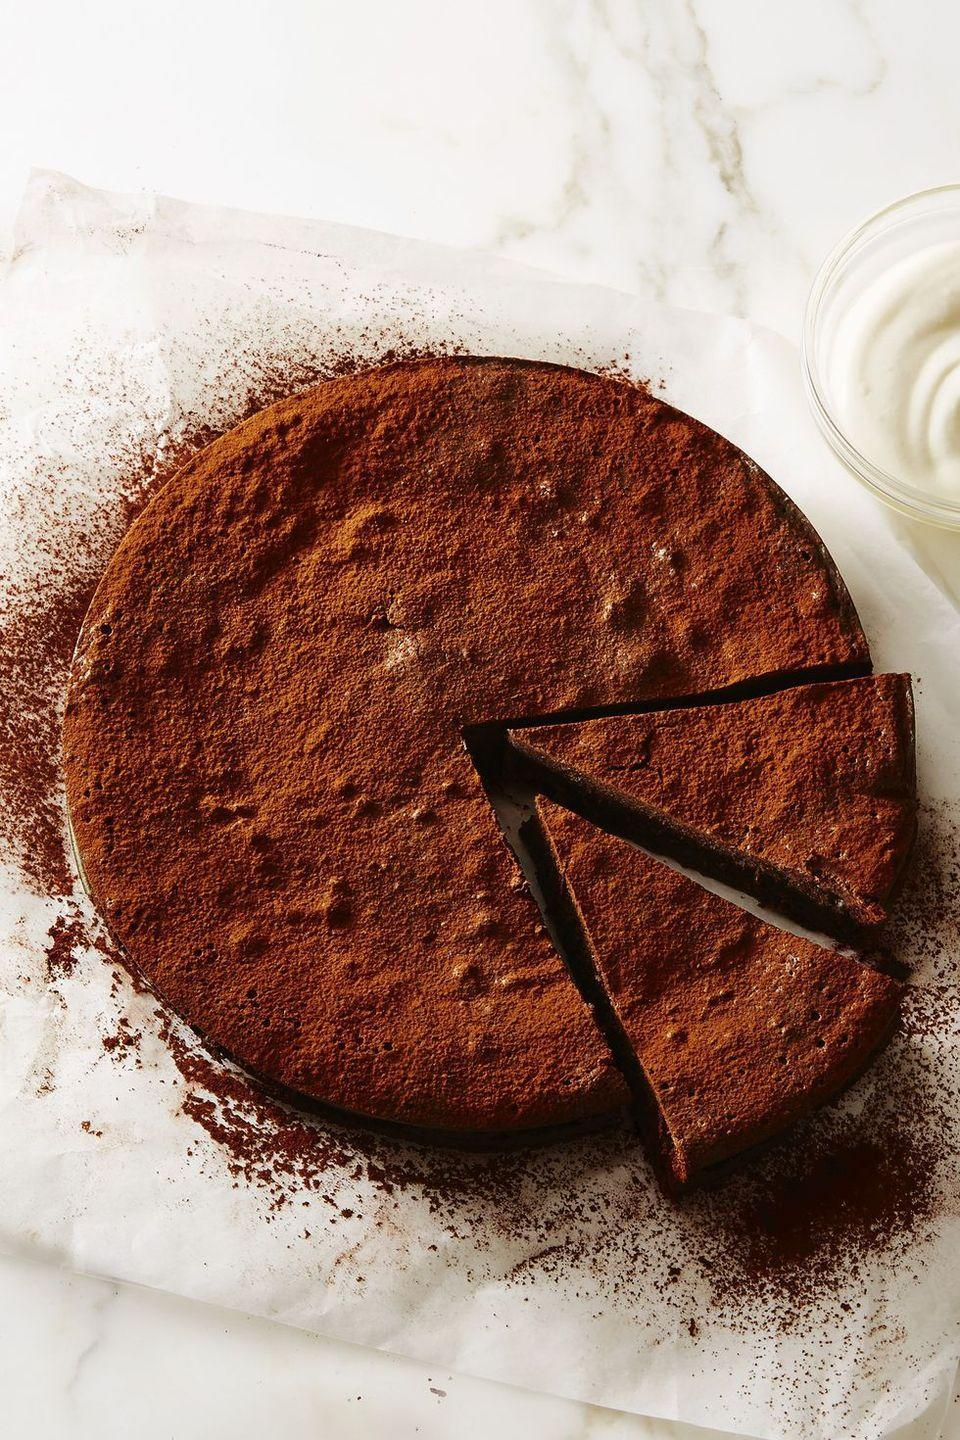 """<p>As if this intensely chocolatey cake wasn't heavenly enough, it also happens to be gluten-free (and perfect for Passover).</p><p><em><a href=""""https://www.goodhousekeeping.com/food-recipes/dessert/a48194/flourless-fudge-cake-recipe/"""" rel=""""nofollow noopener"""" target=""""_blank"""" data-ylk=""""slk:Get the recipe for Flourless Fudge Cake »"""" class=""""link rapid-noclick-resp"""">Get the recipe for Flourless Fudge Cake »</a></em></p><p><em><strong>RELATED:</strong></em> <a href=""""https://www.goodhousekeeping.com/food-recipes/dessert/g31448495/easy-passover-desserts/"""" rel=""""nofollow noopener"""" target=""""_blank"""" data-ylk=""""slk:30 Delicious Passover Desserts to Satisfy Your Sweet Tooth"""" class=""""link rapid-noclick-resp"""">30 Delicious Passover Desserts to Satisfy Your Sweet Tooth</a><br></p>"""